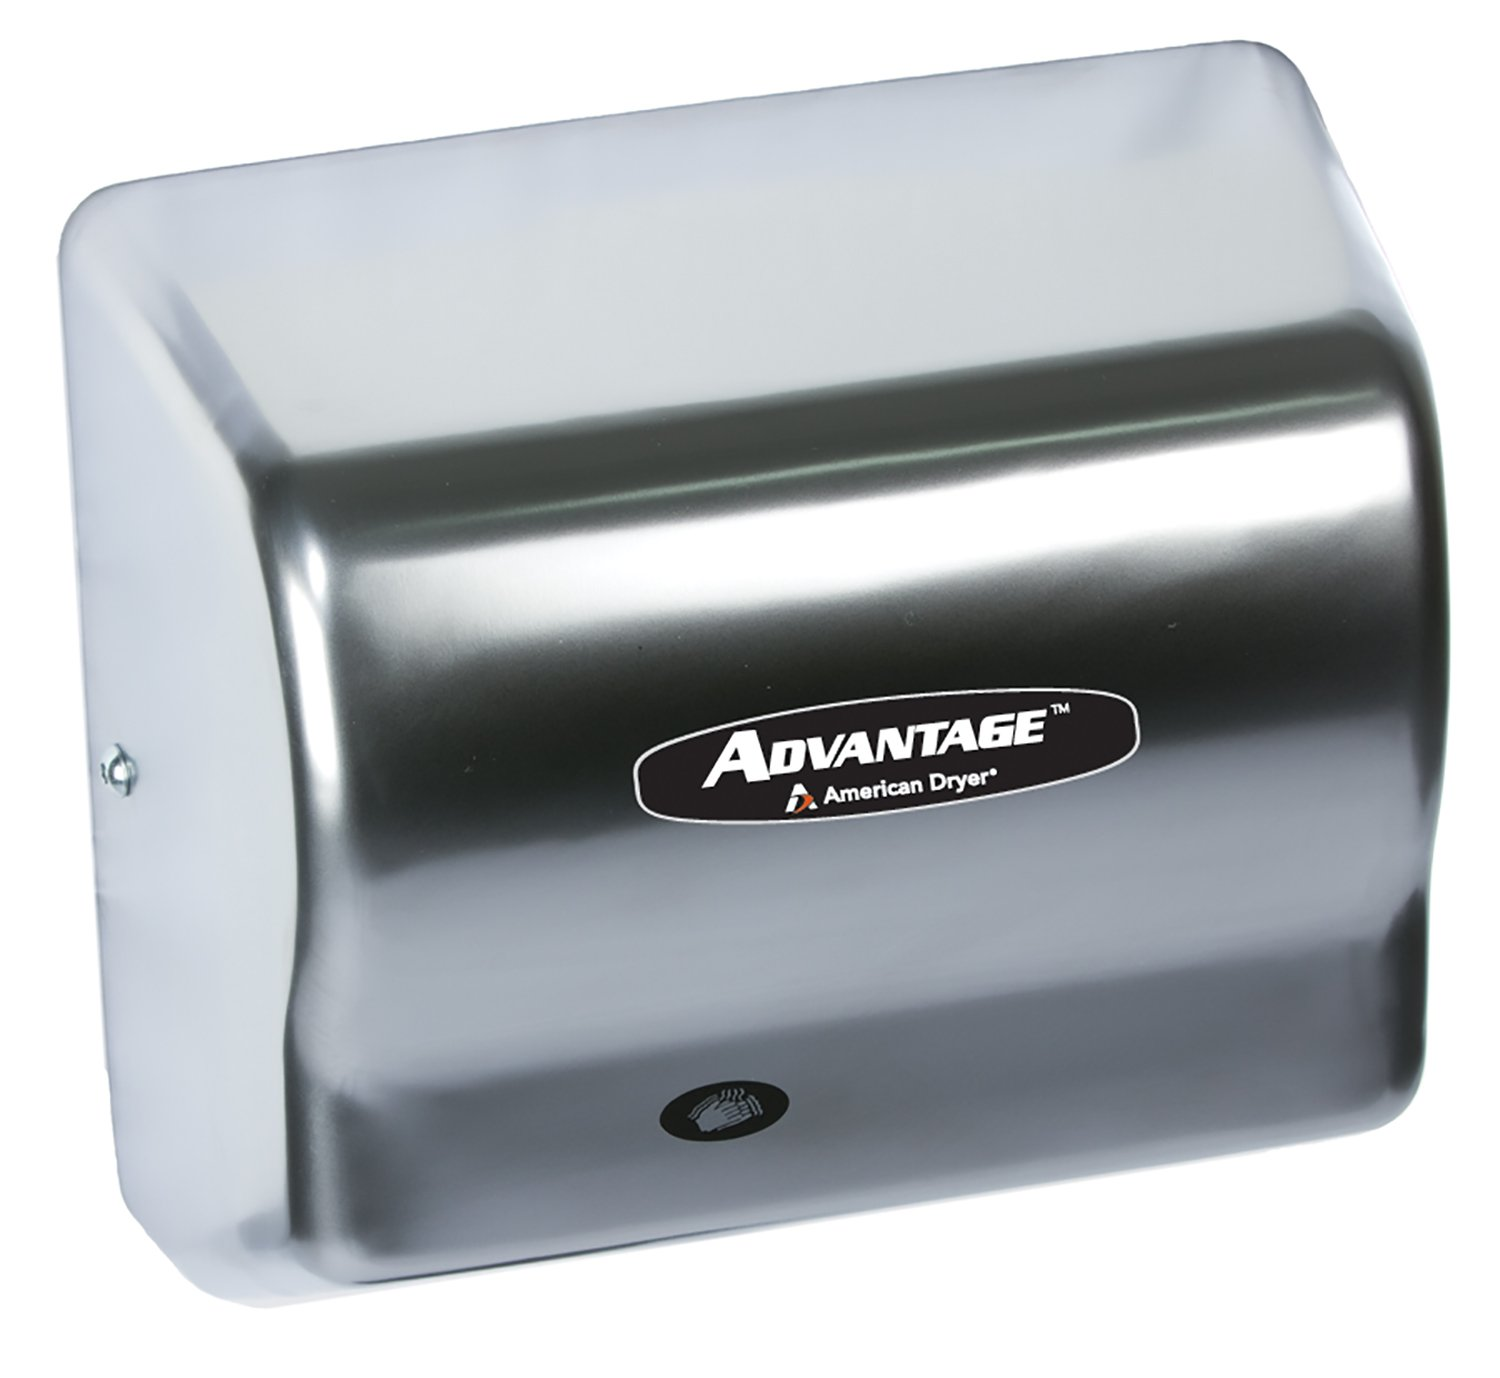 Image of American Dryer AD90-SS Advantage Stainless Steel Standard Automatic Hand Dryer, 4 Brush Finish, 1/8 HP Motor, 100-240V, 5-5/8' Length x 10-1/8' Width x 9-3/8' Height Hand Dryers